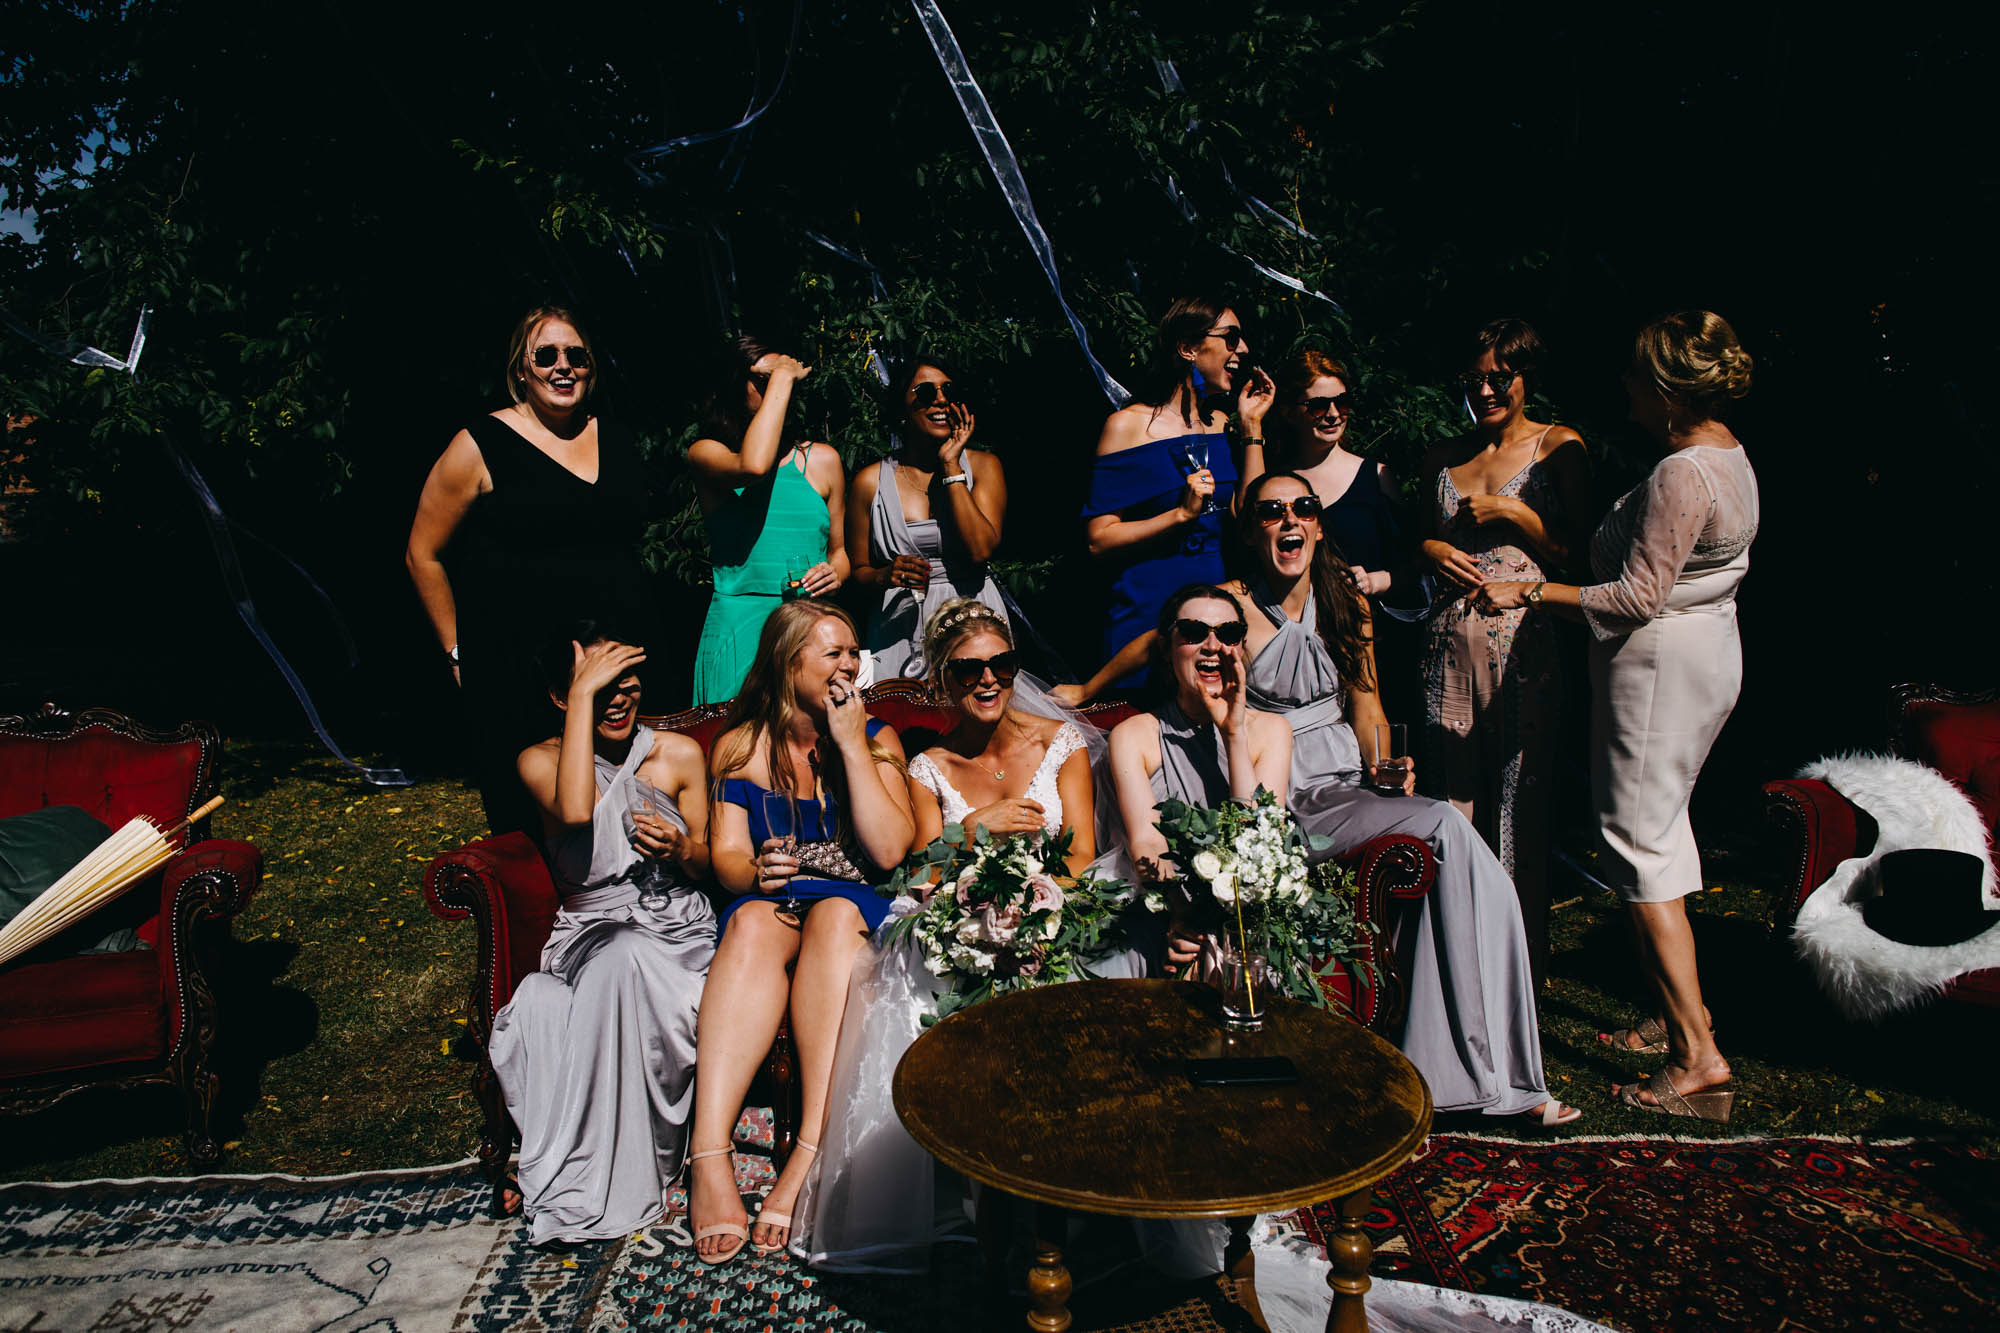 gemy-maalouf-wedding-44